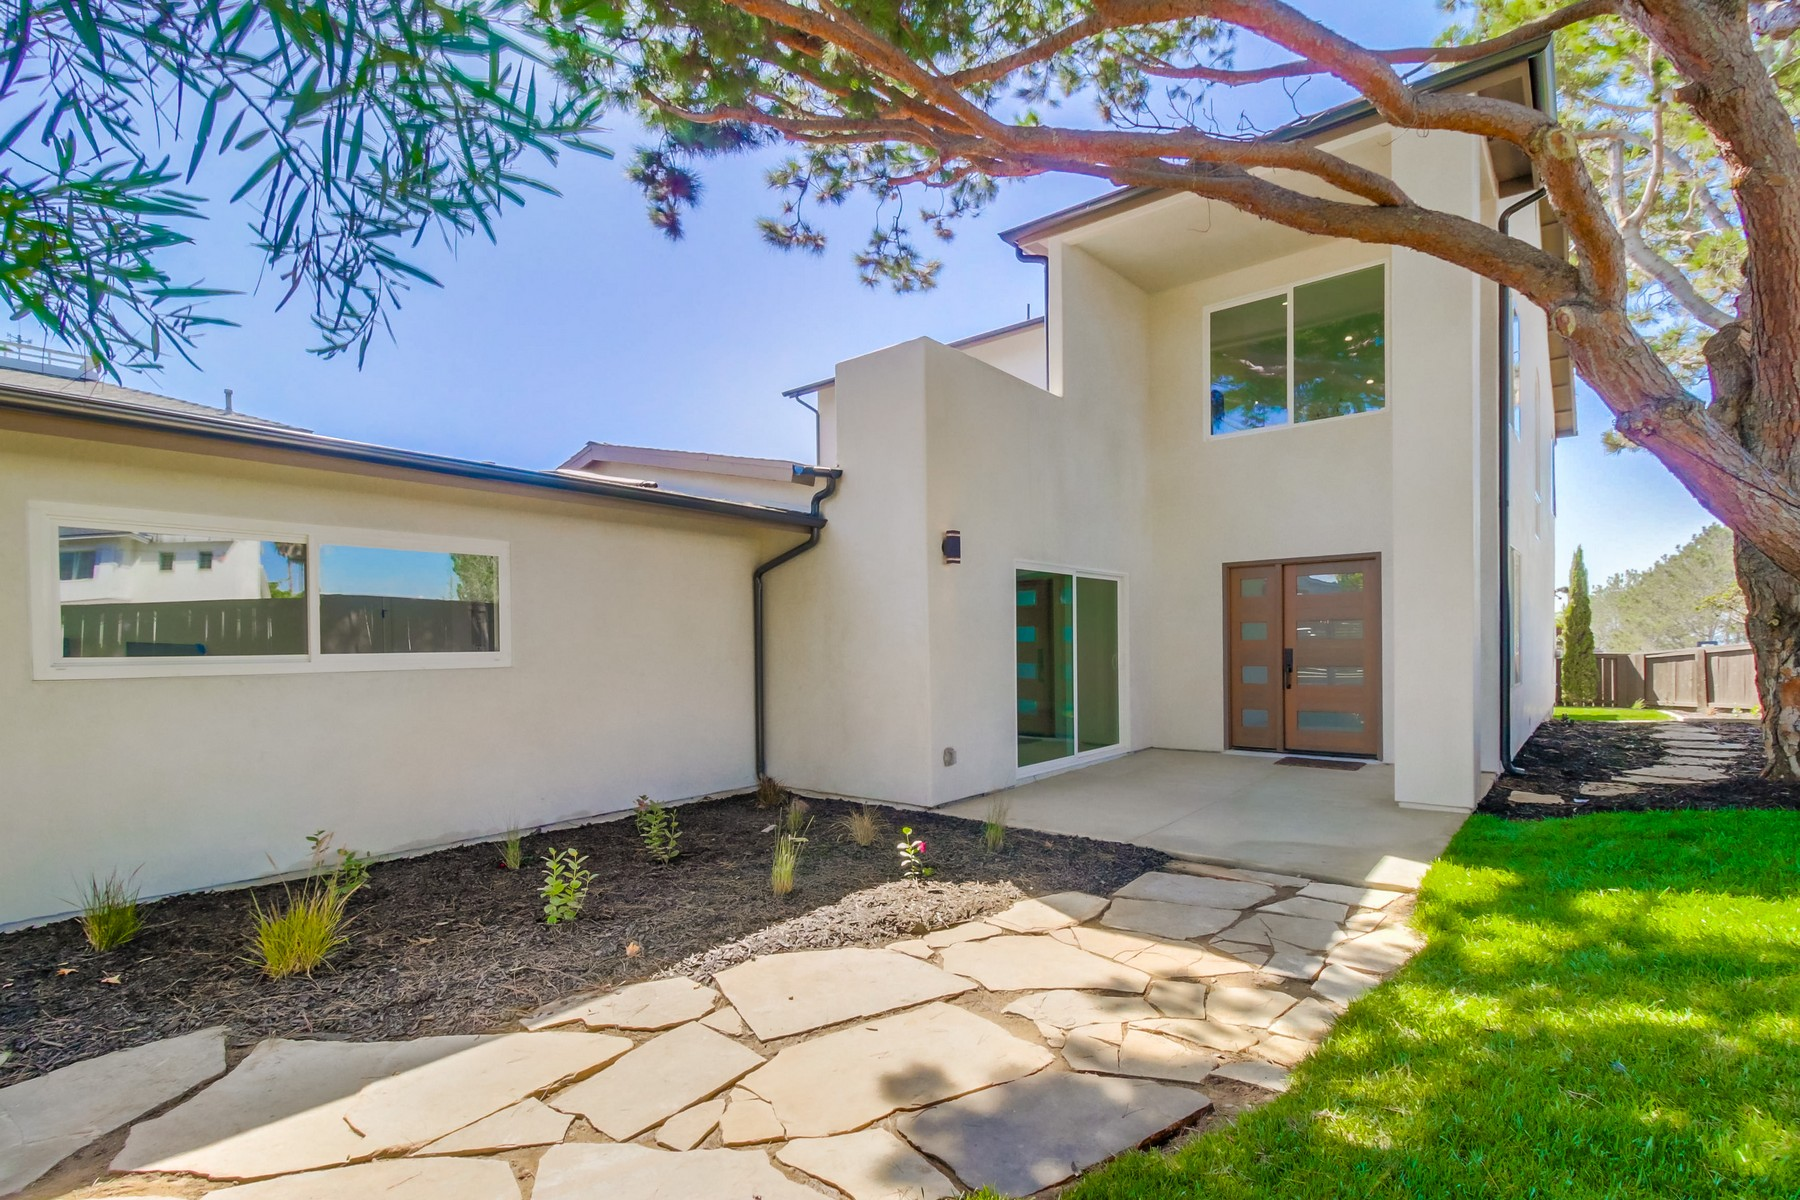 Single Family Home for Sale at 13796 Nogales Drive Del Mar, California 92014 United States